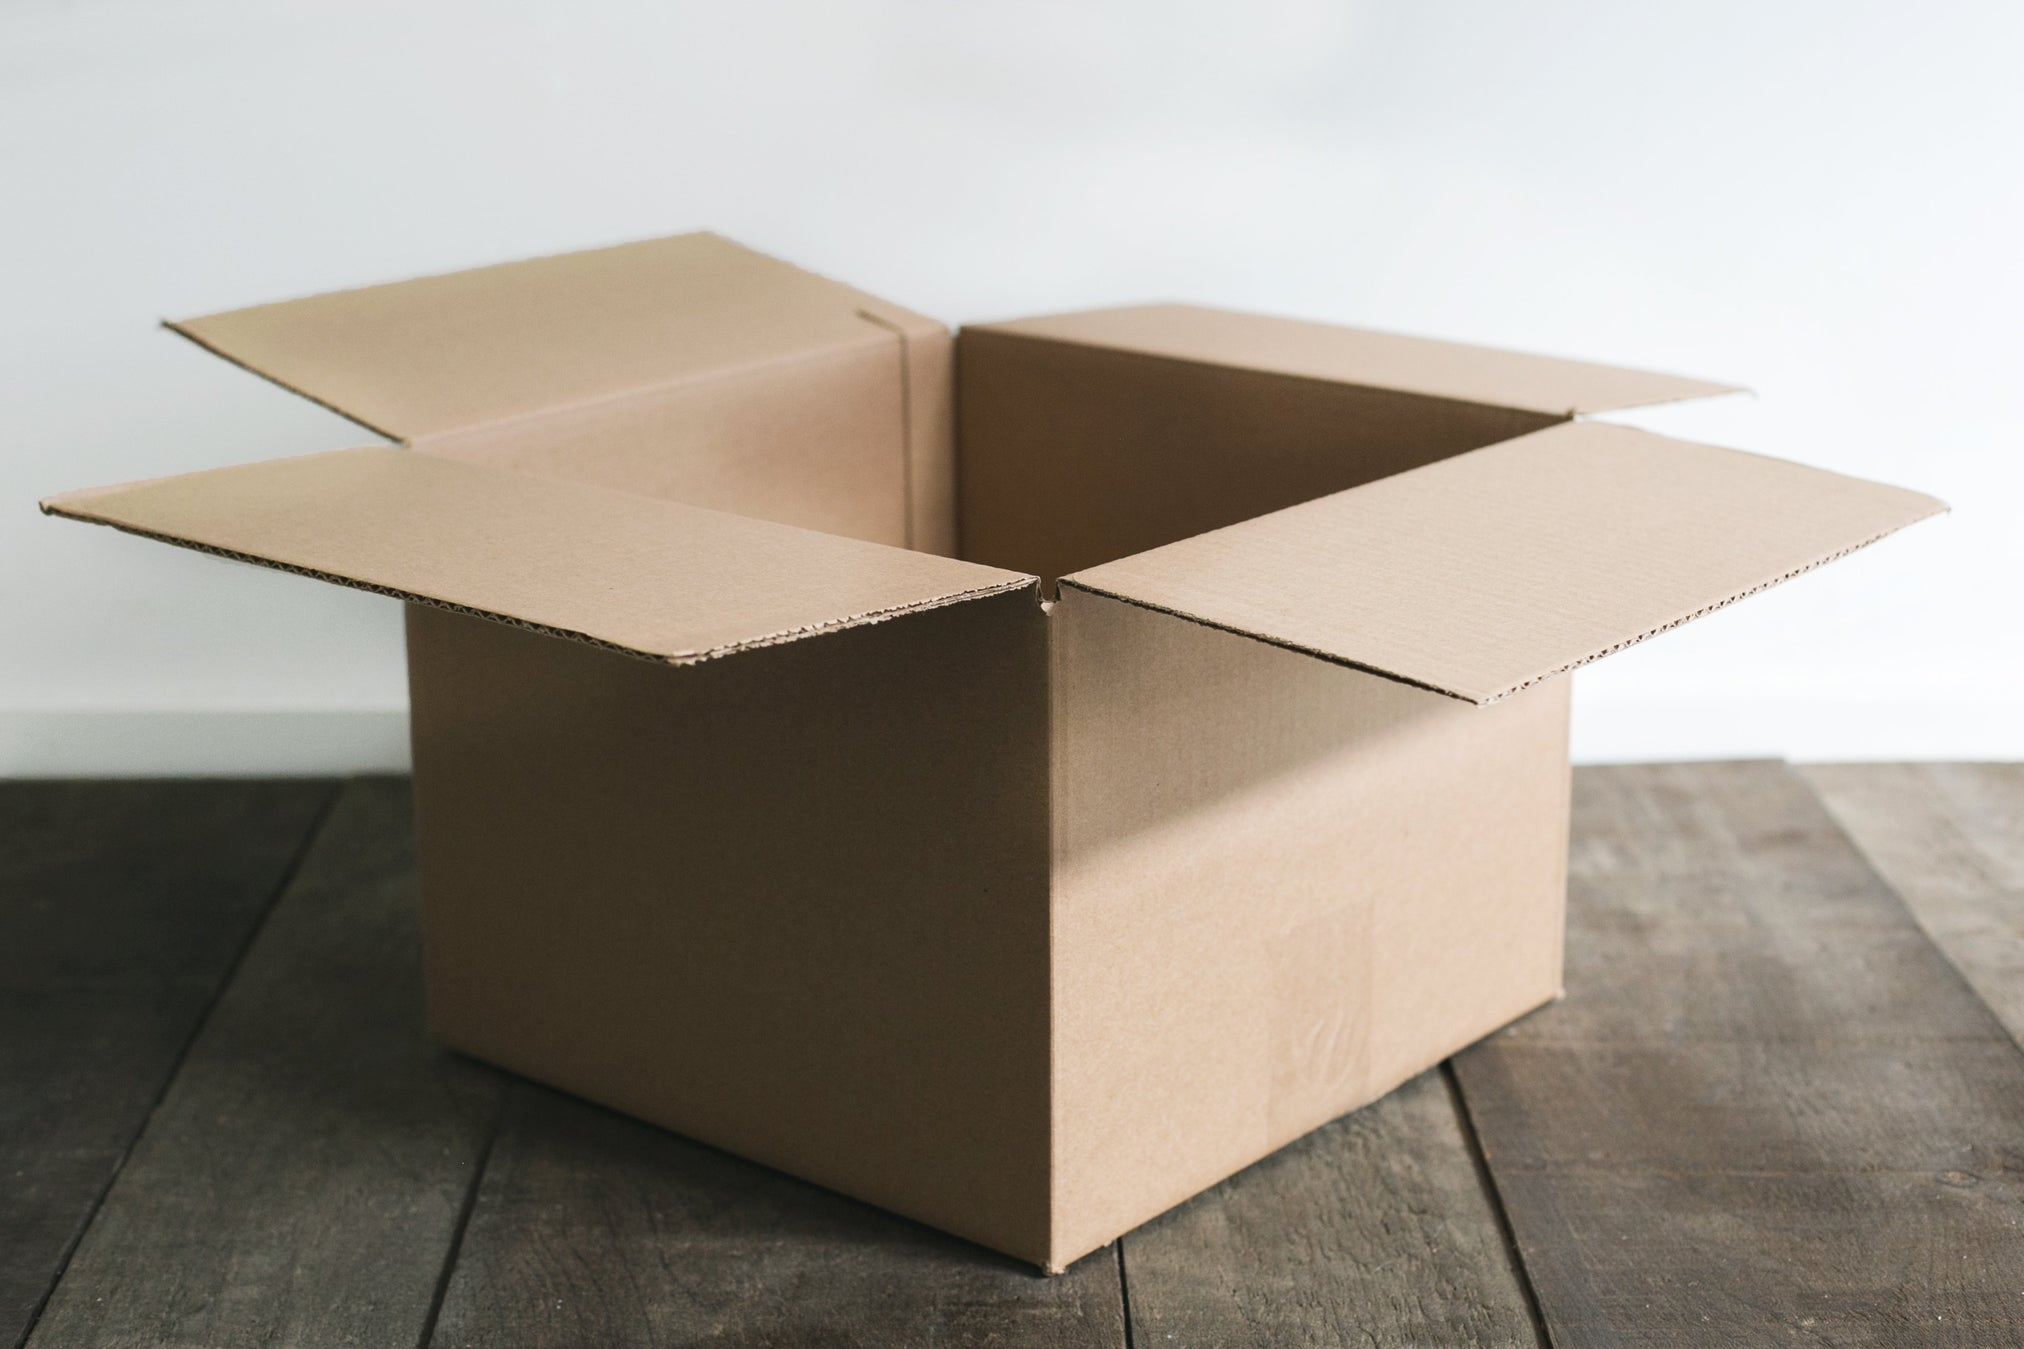 Different Styles Of Cardboard Boxes